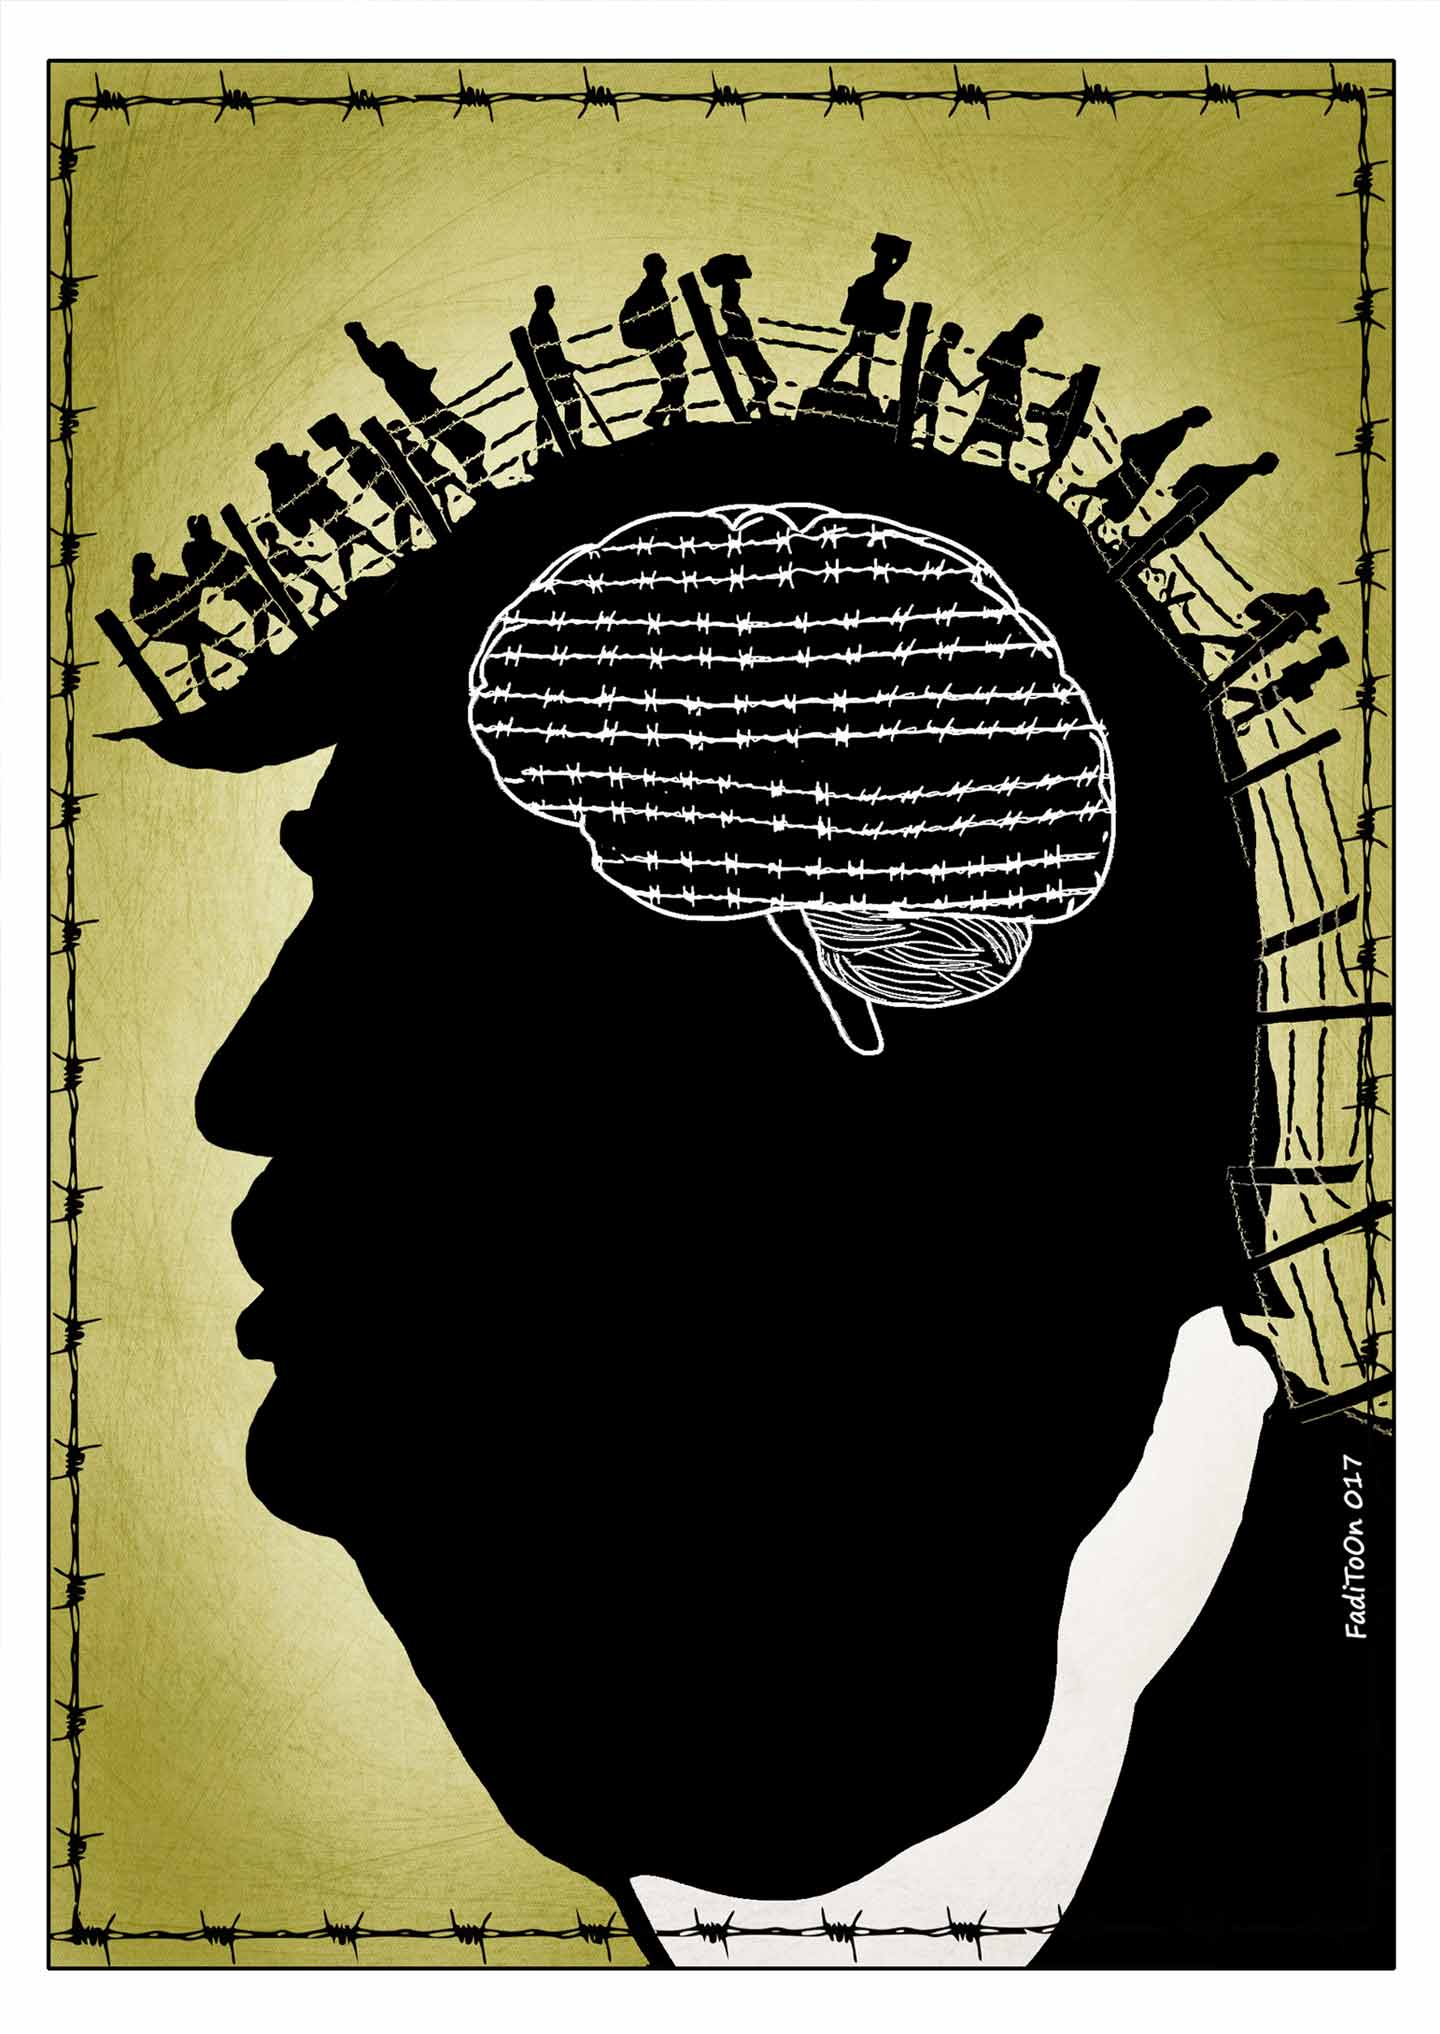 Fadi Abou Hassan cartoon shows silhouette of Trump's head with a line of people walking behind a barbed wire fence along his hair